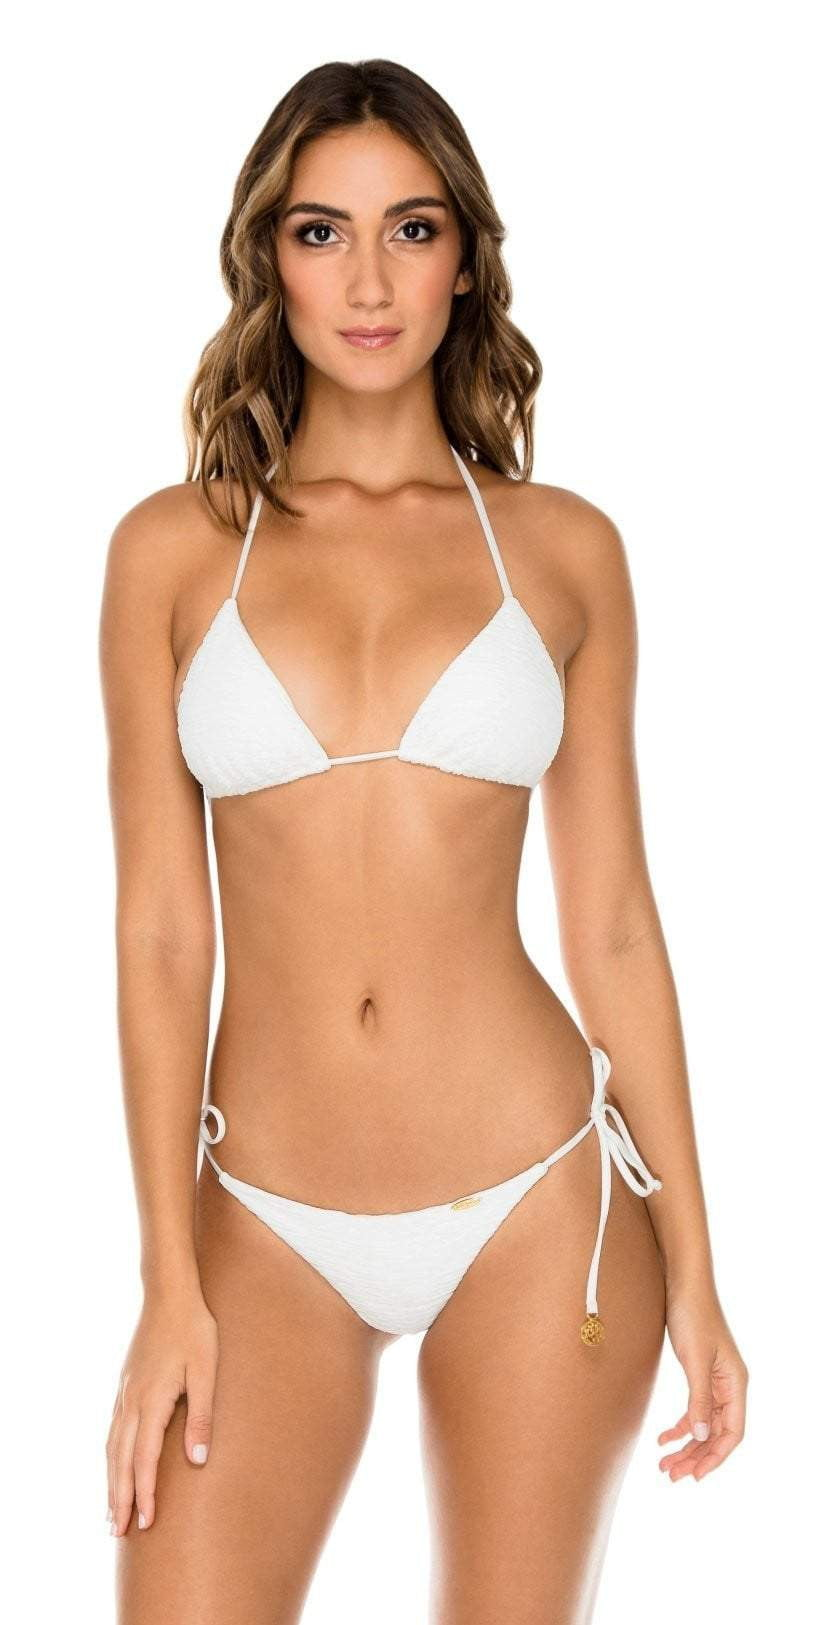 Luli Fama Buleria Triangle Halter Bikini Top in White L61121P 068